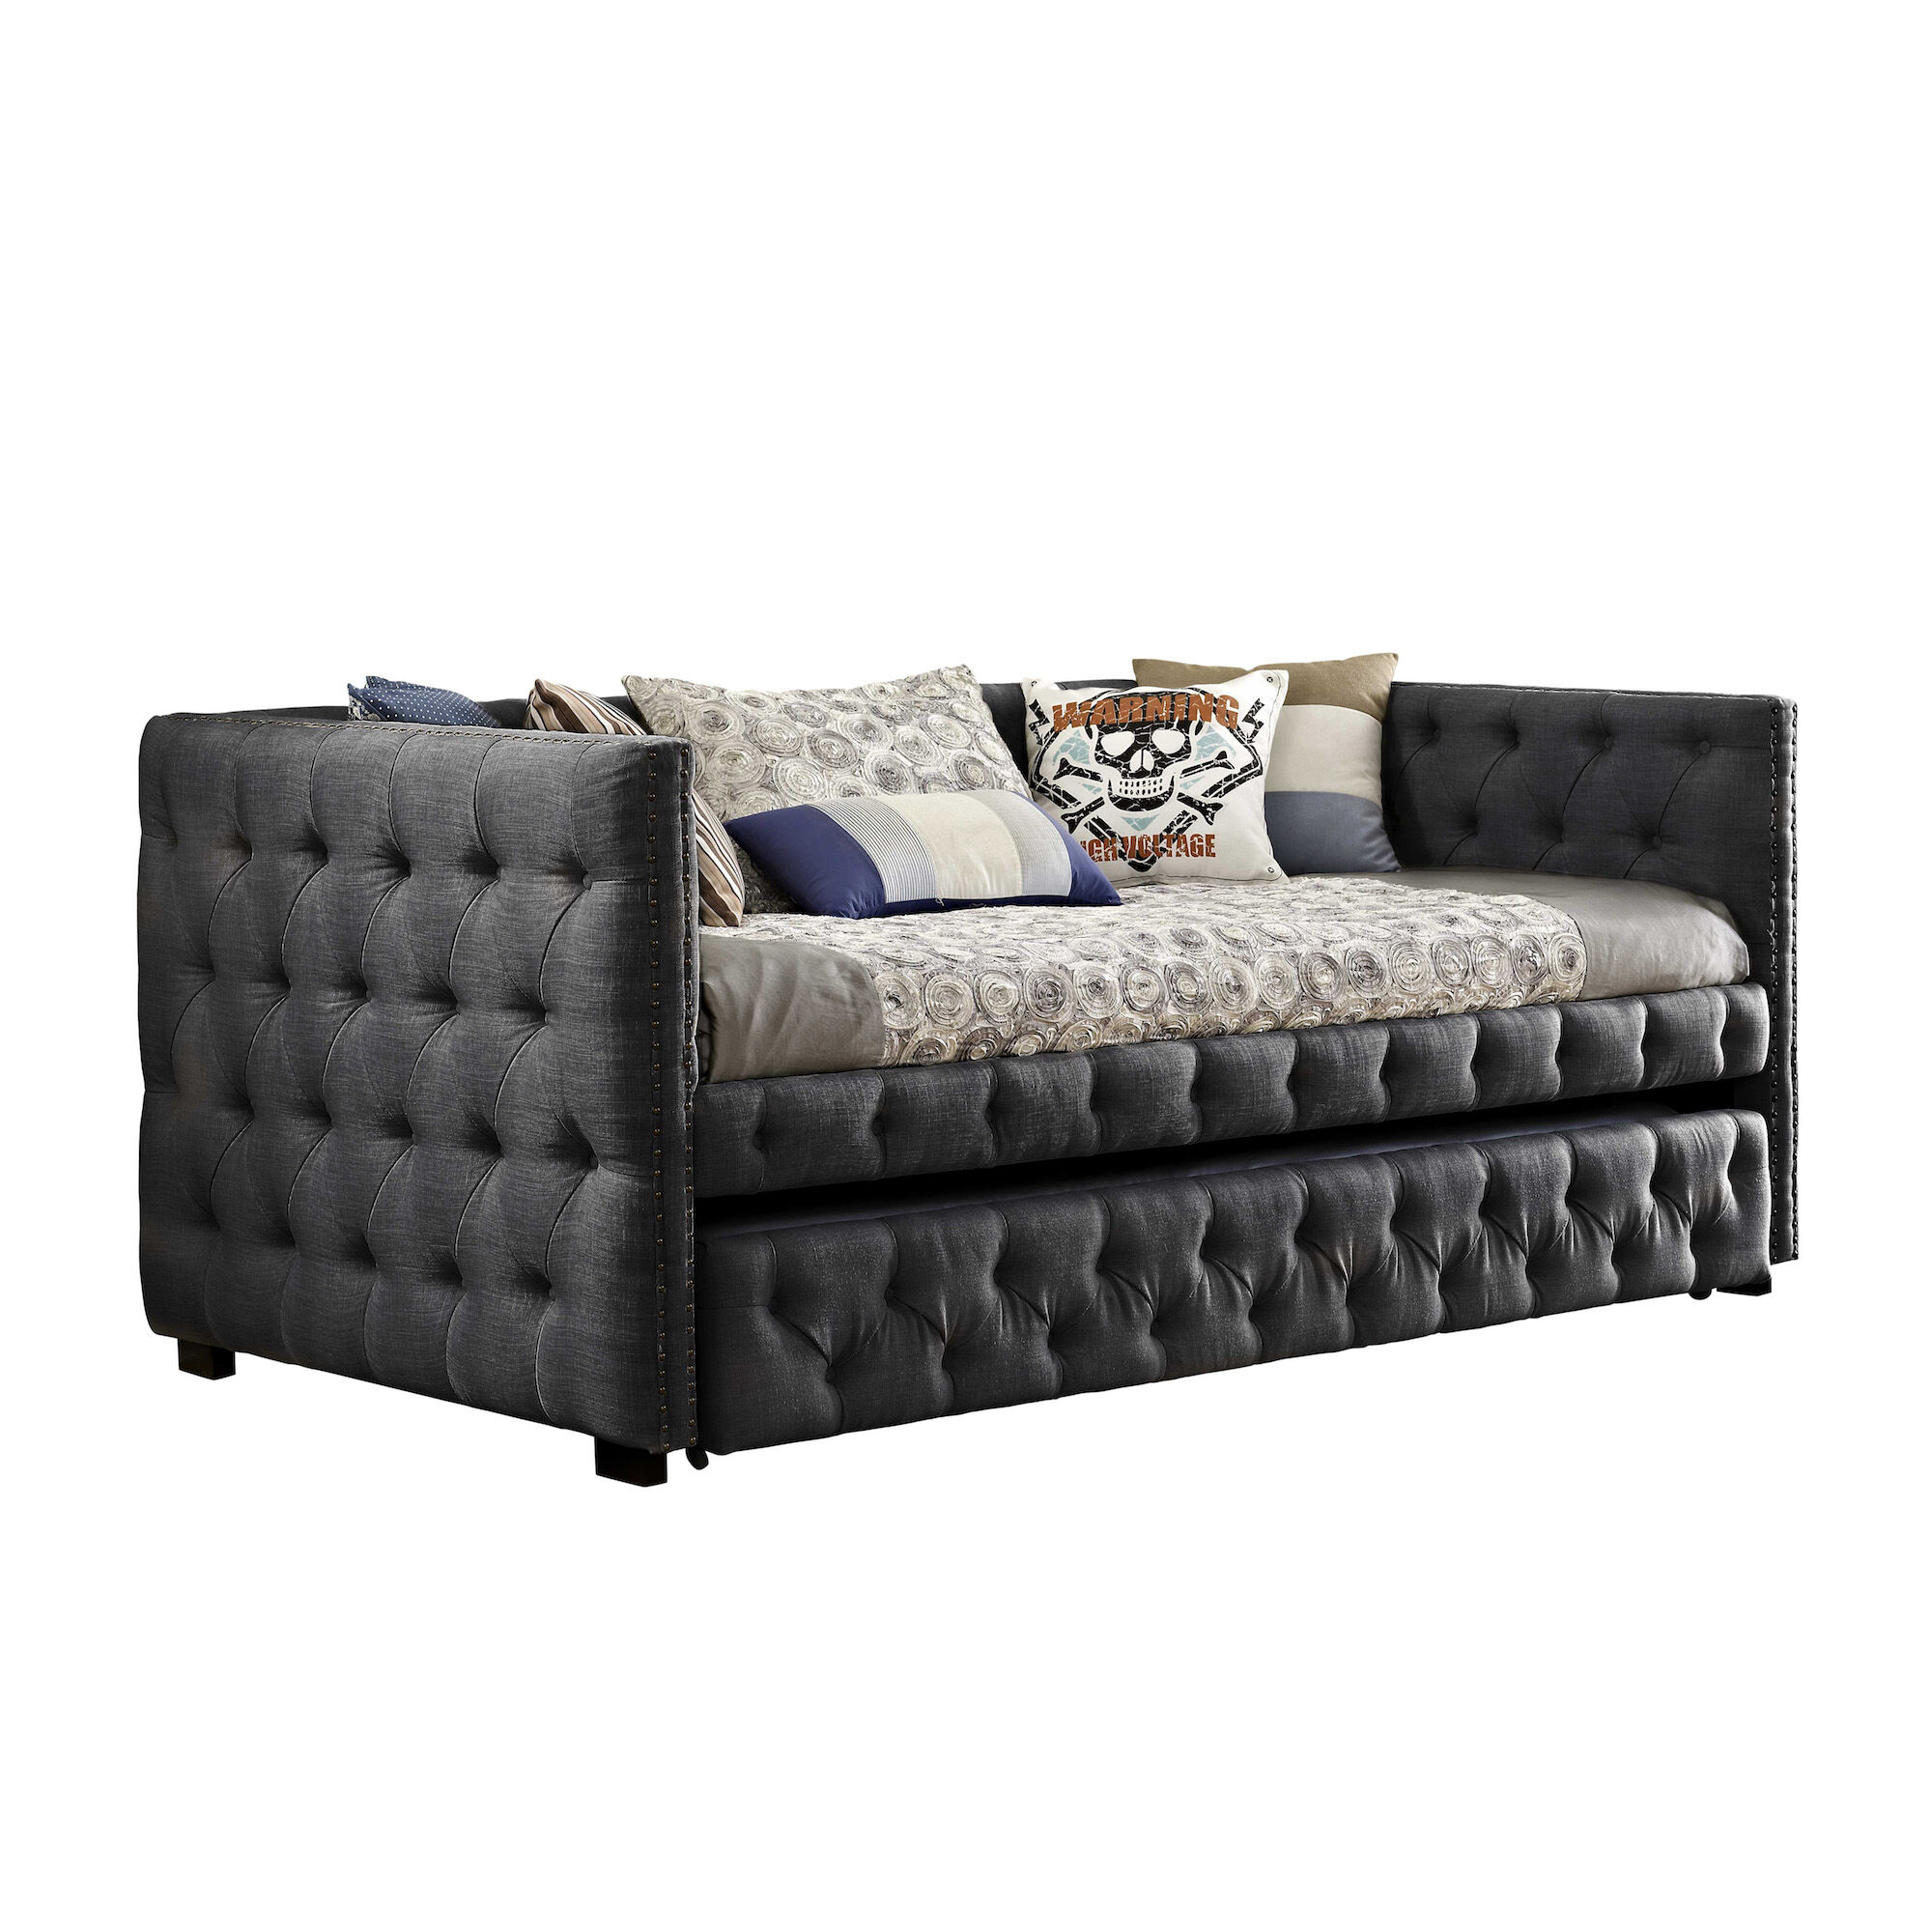 Elements Bedroom Groups Janell Daybed Charcoal